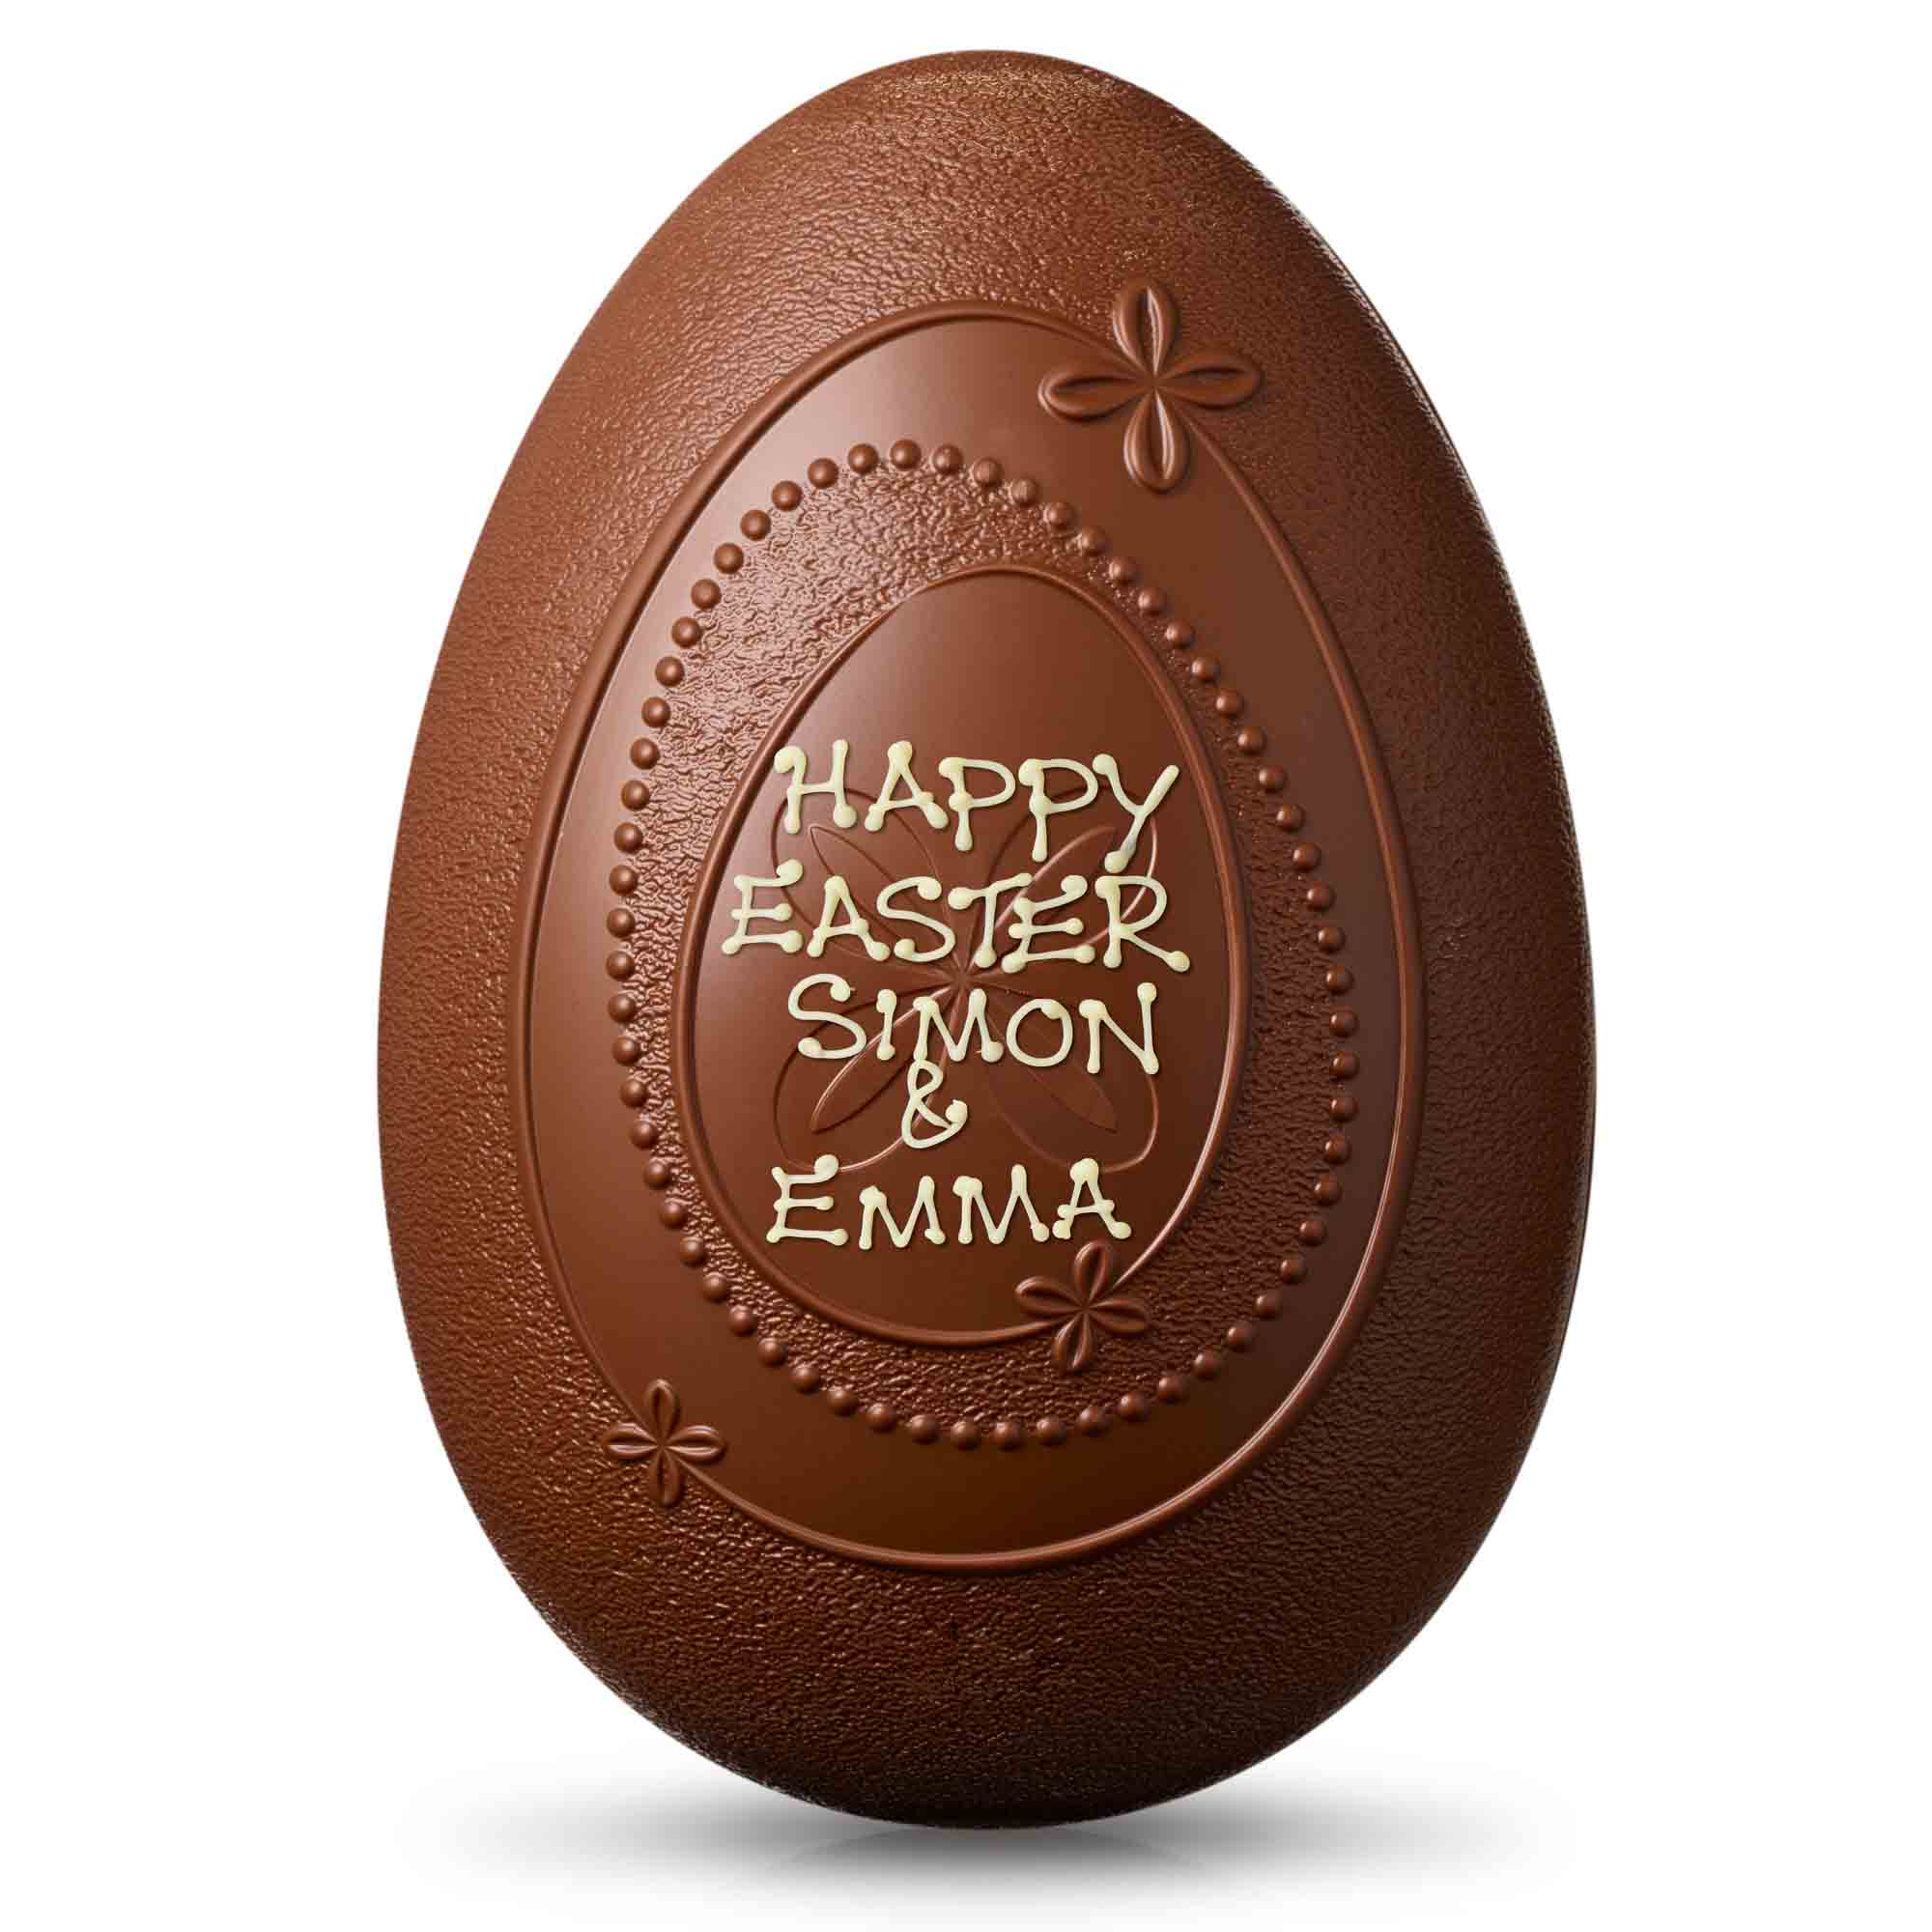 Easter Egg The Giant Easter Egg Large Chocolate Easter Egg For Sale Uk